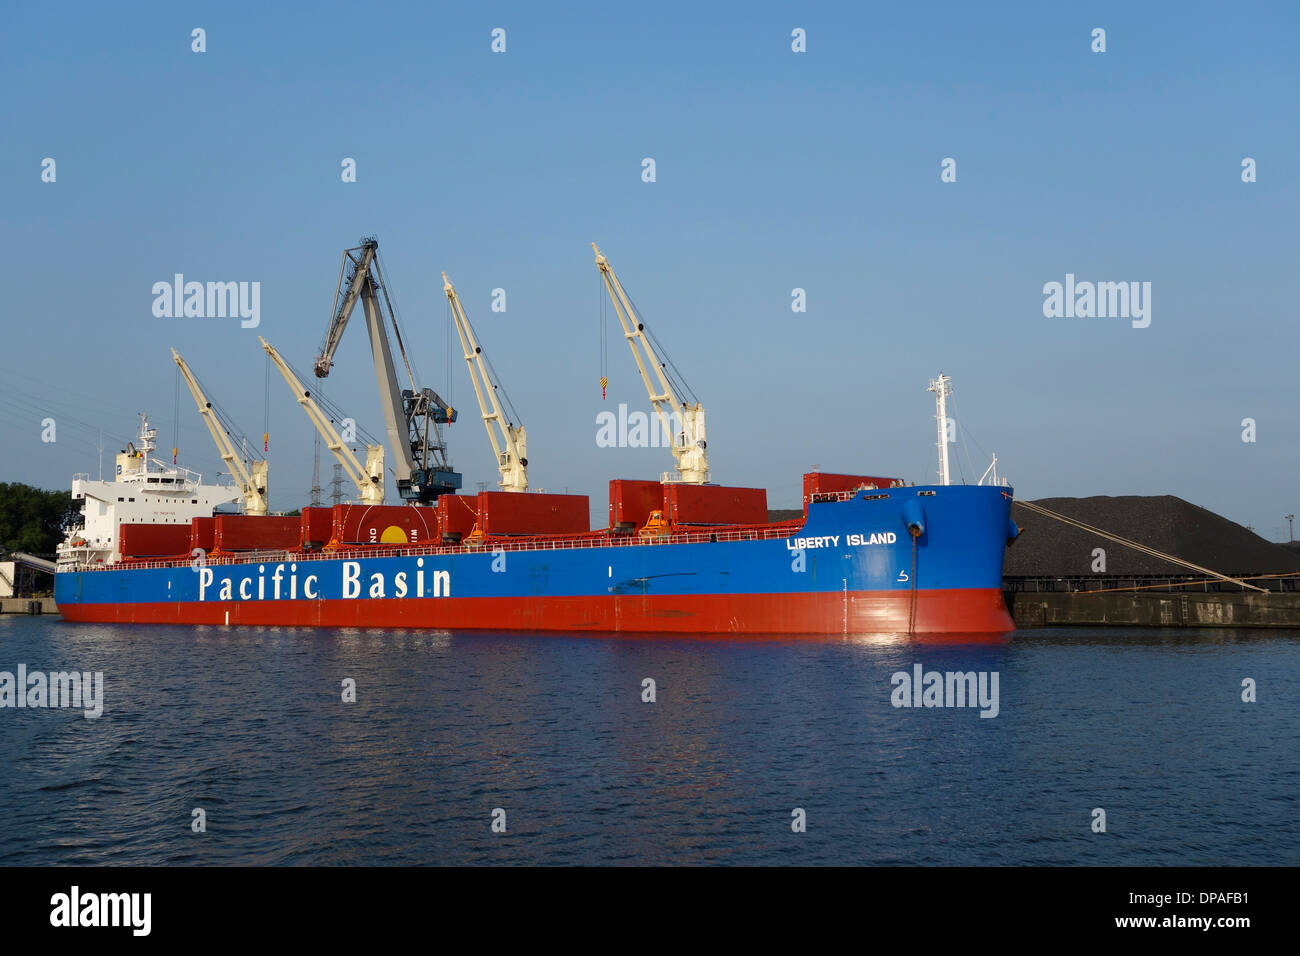 Pacific Basin bulk carrier docked at SEA-invest / Ghent Coal Terminal at the port of Ghent, East Flanders, Belgium - Stock Image